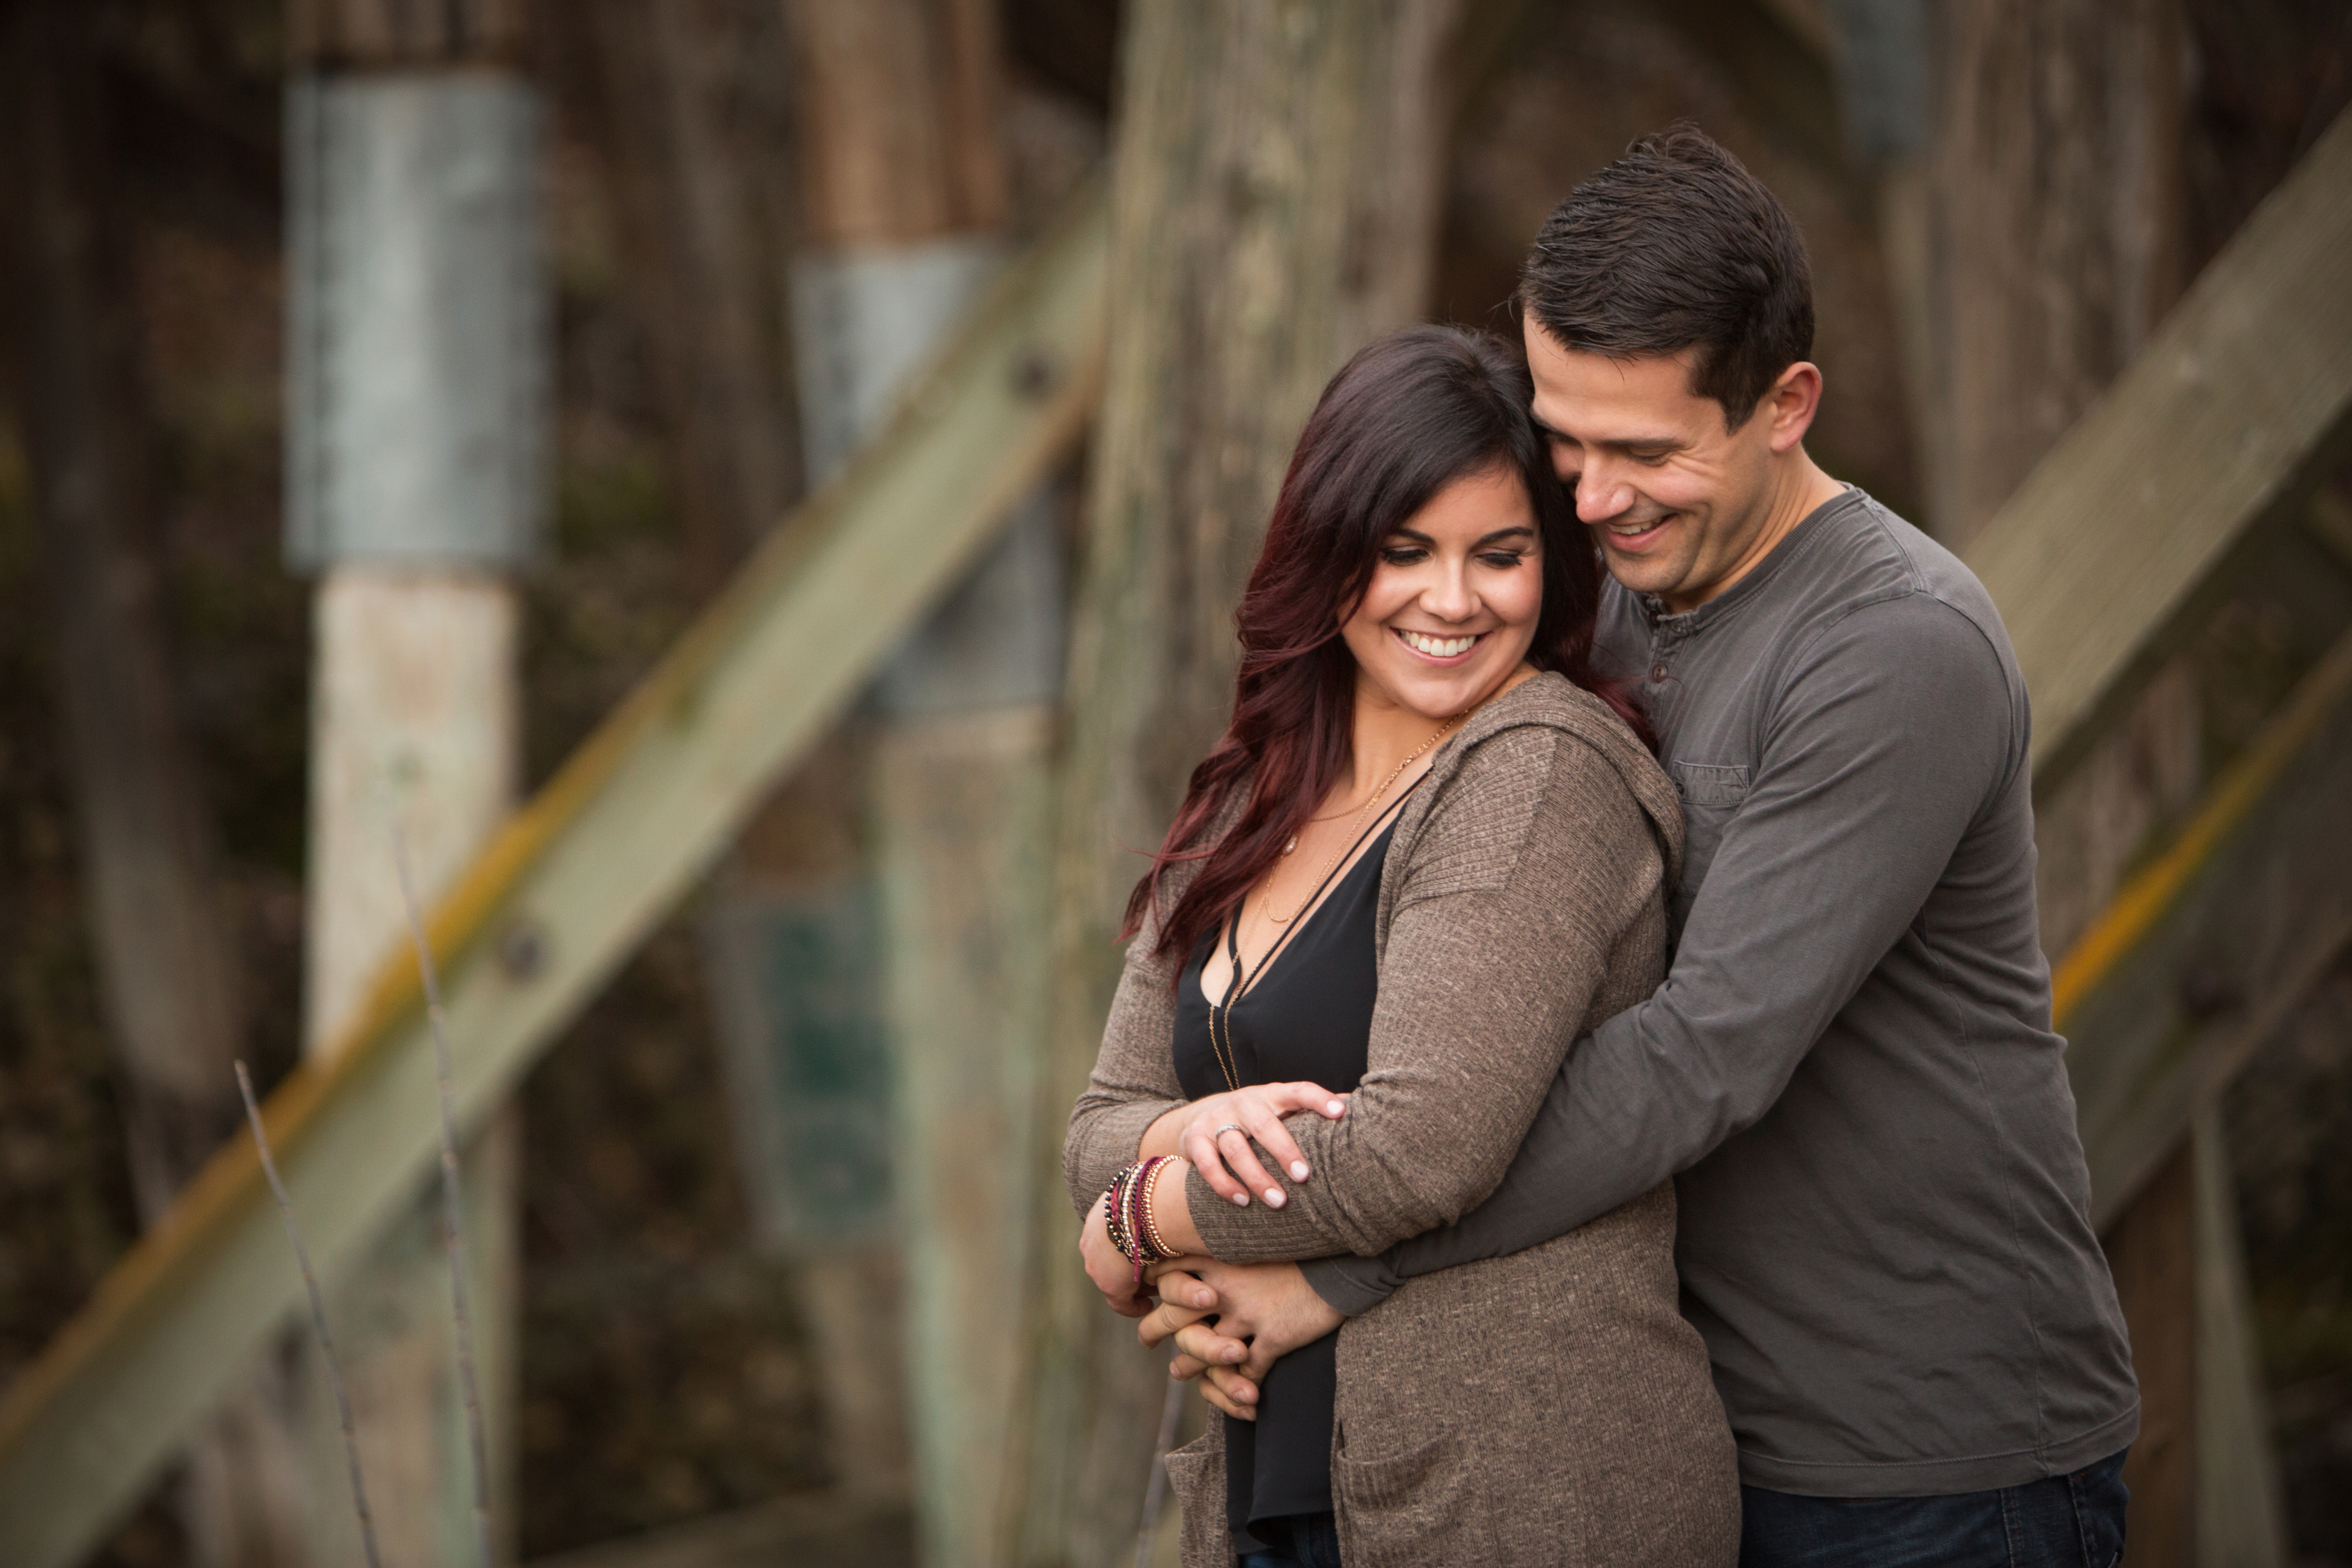 Smiling couple embracing with rustic wood background